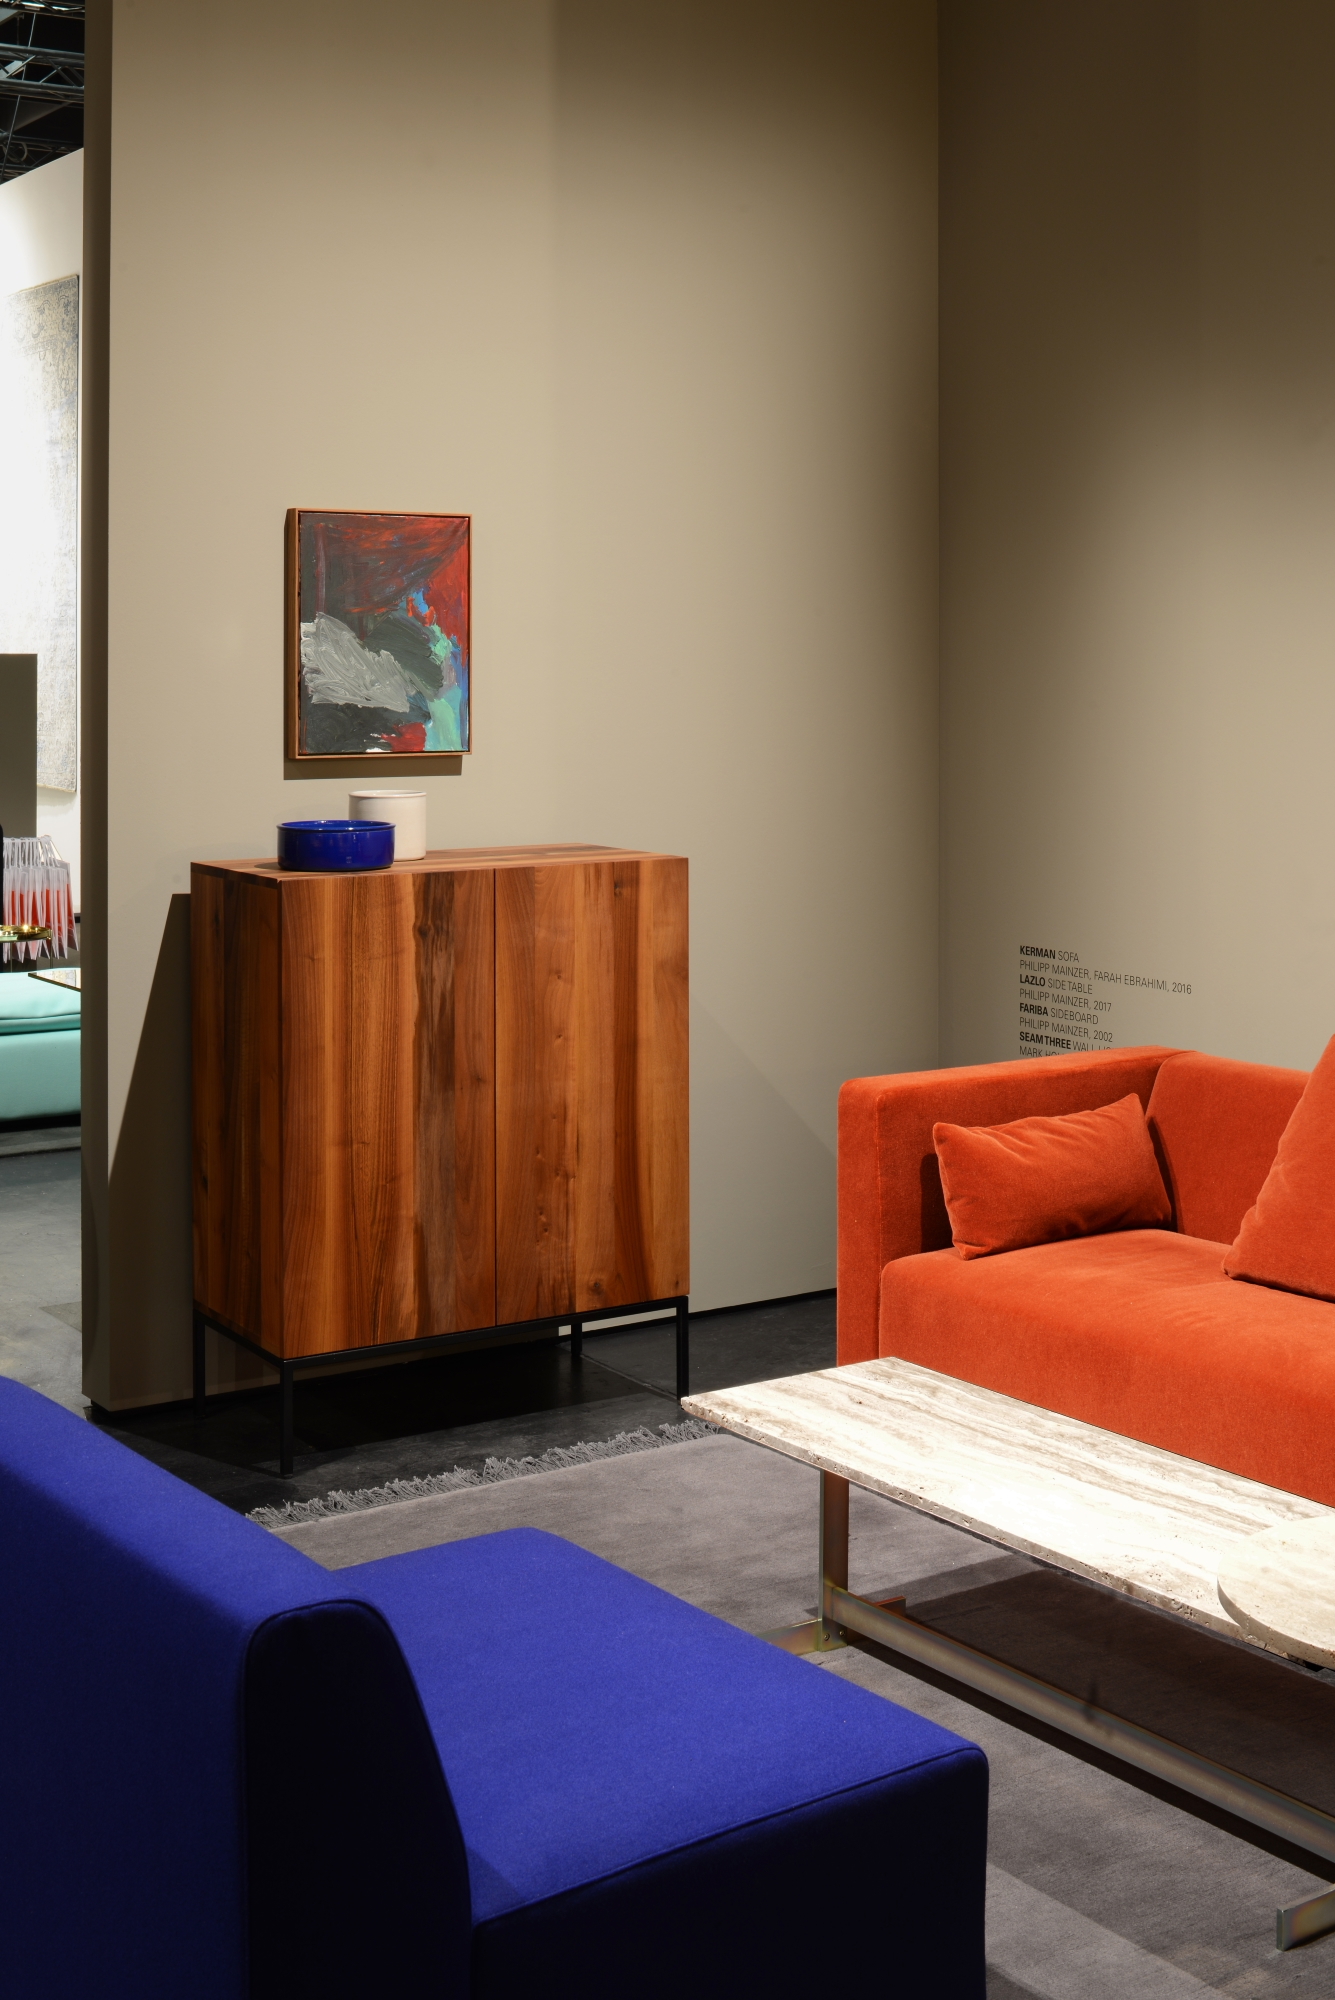 Kerman sofa by Philipp Mainzer and Farah Ebrahimi, Fariba sideboard and Lazlo coffee table by Philipp Mainzer.